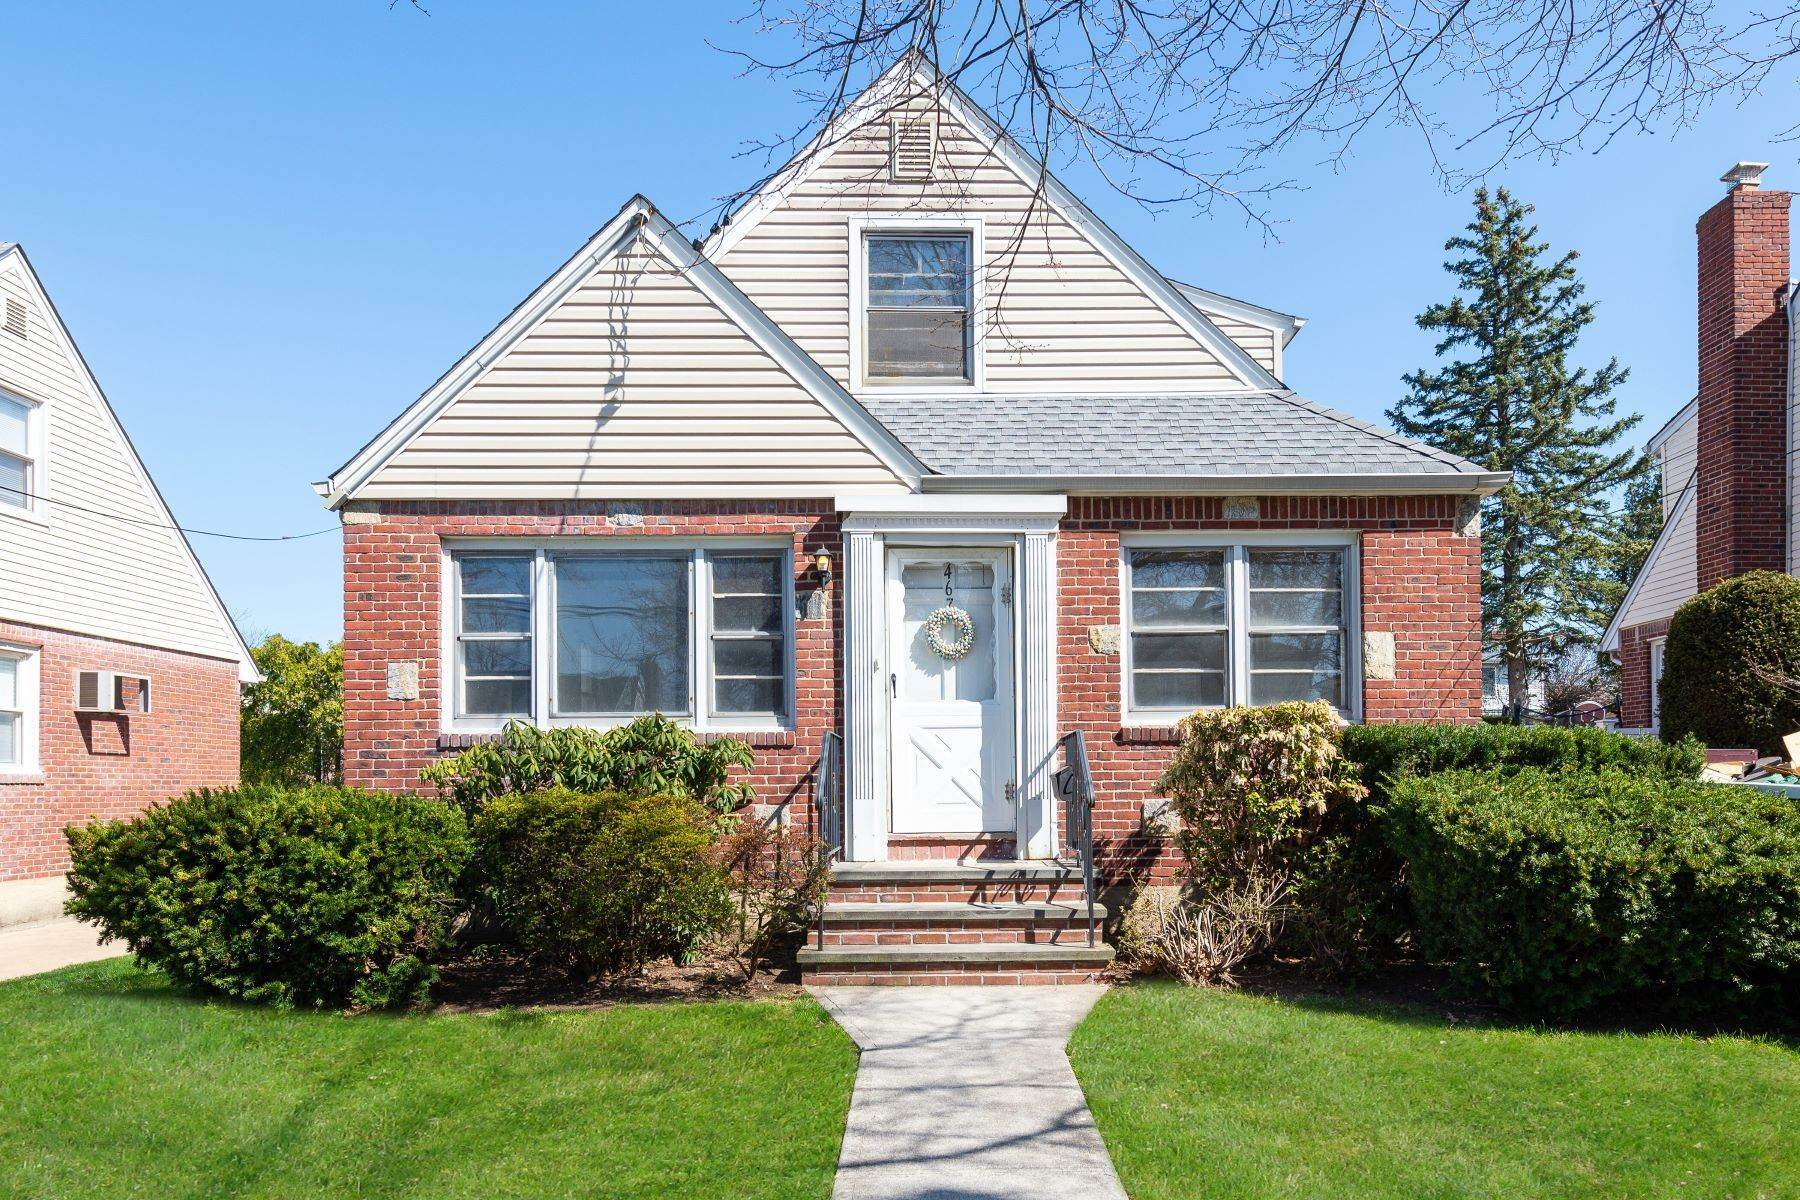 Single Family Homes for Sale at 467 Carnation Avenue, Floral Park, Ny, 11001 467 Carnation Avenue Floral Park, New York 11001 United States